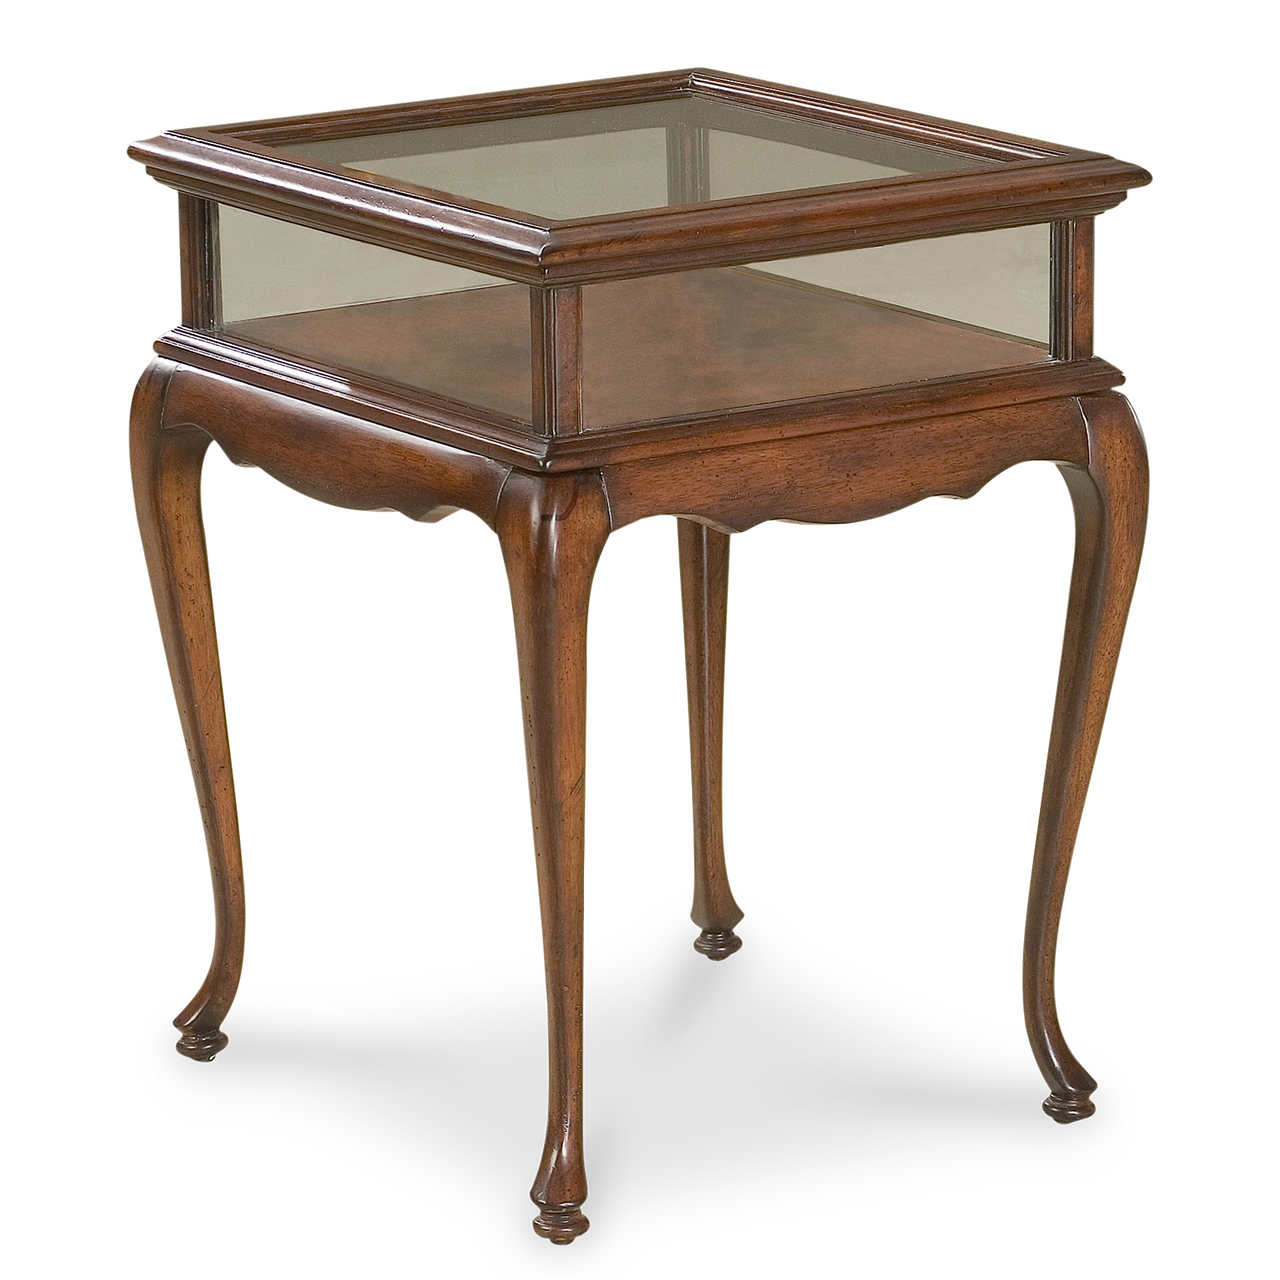 chelmsford glass top curio display table kensington row tables cherry wood end with categories magnussen lybrook coffee what nightstand urban ladder uttermost quillon stanley